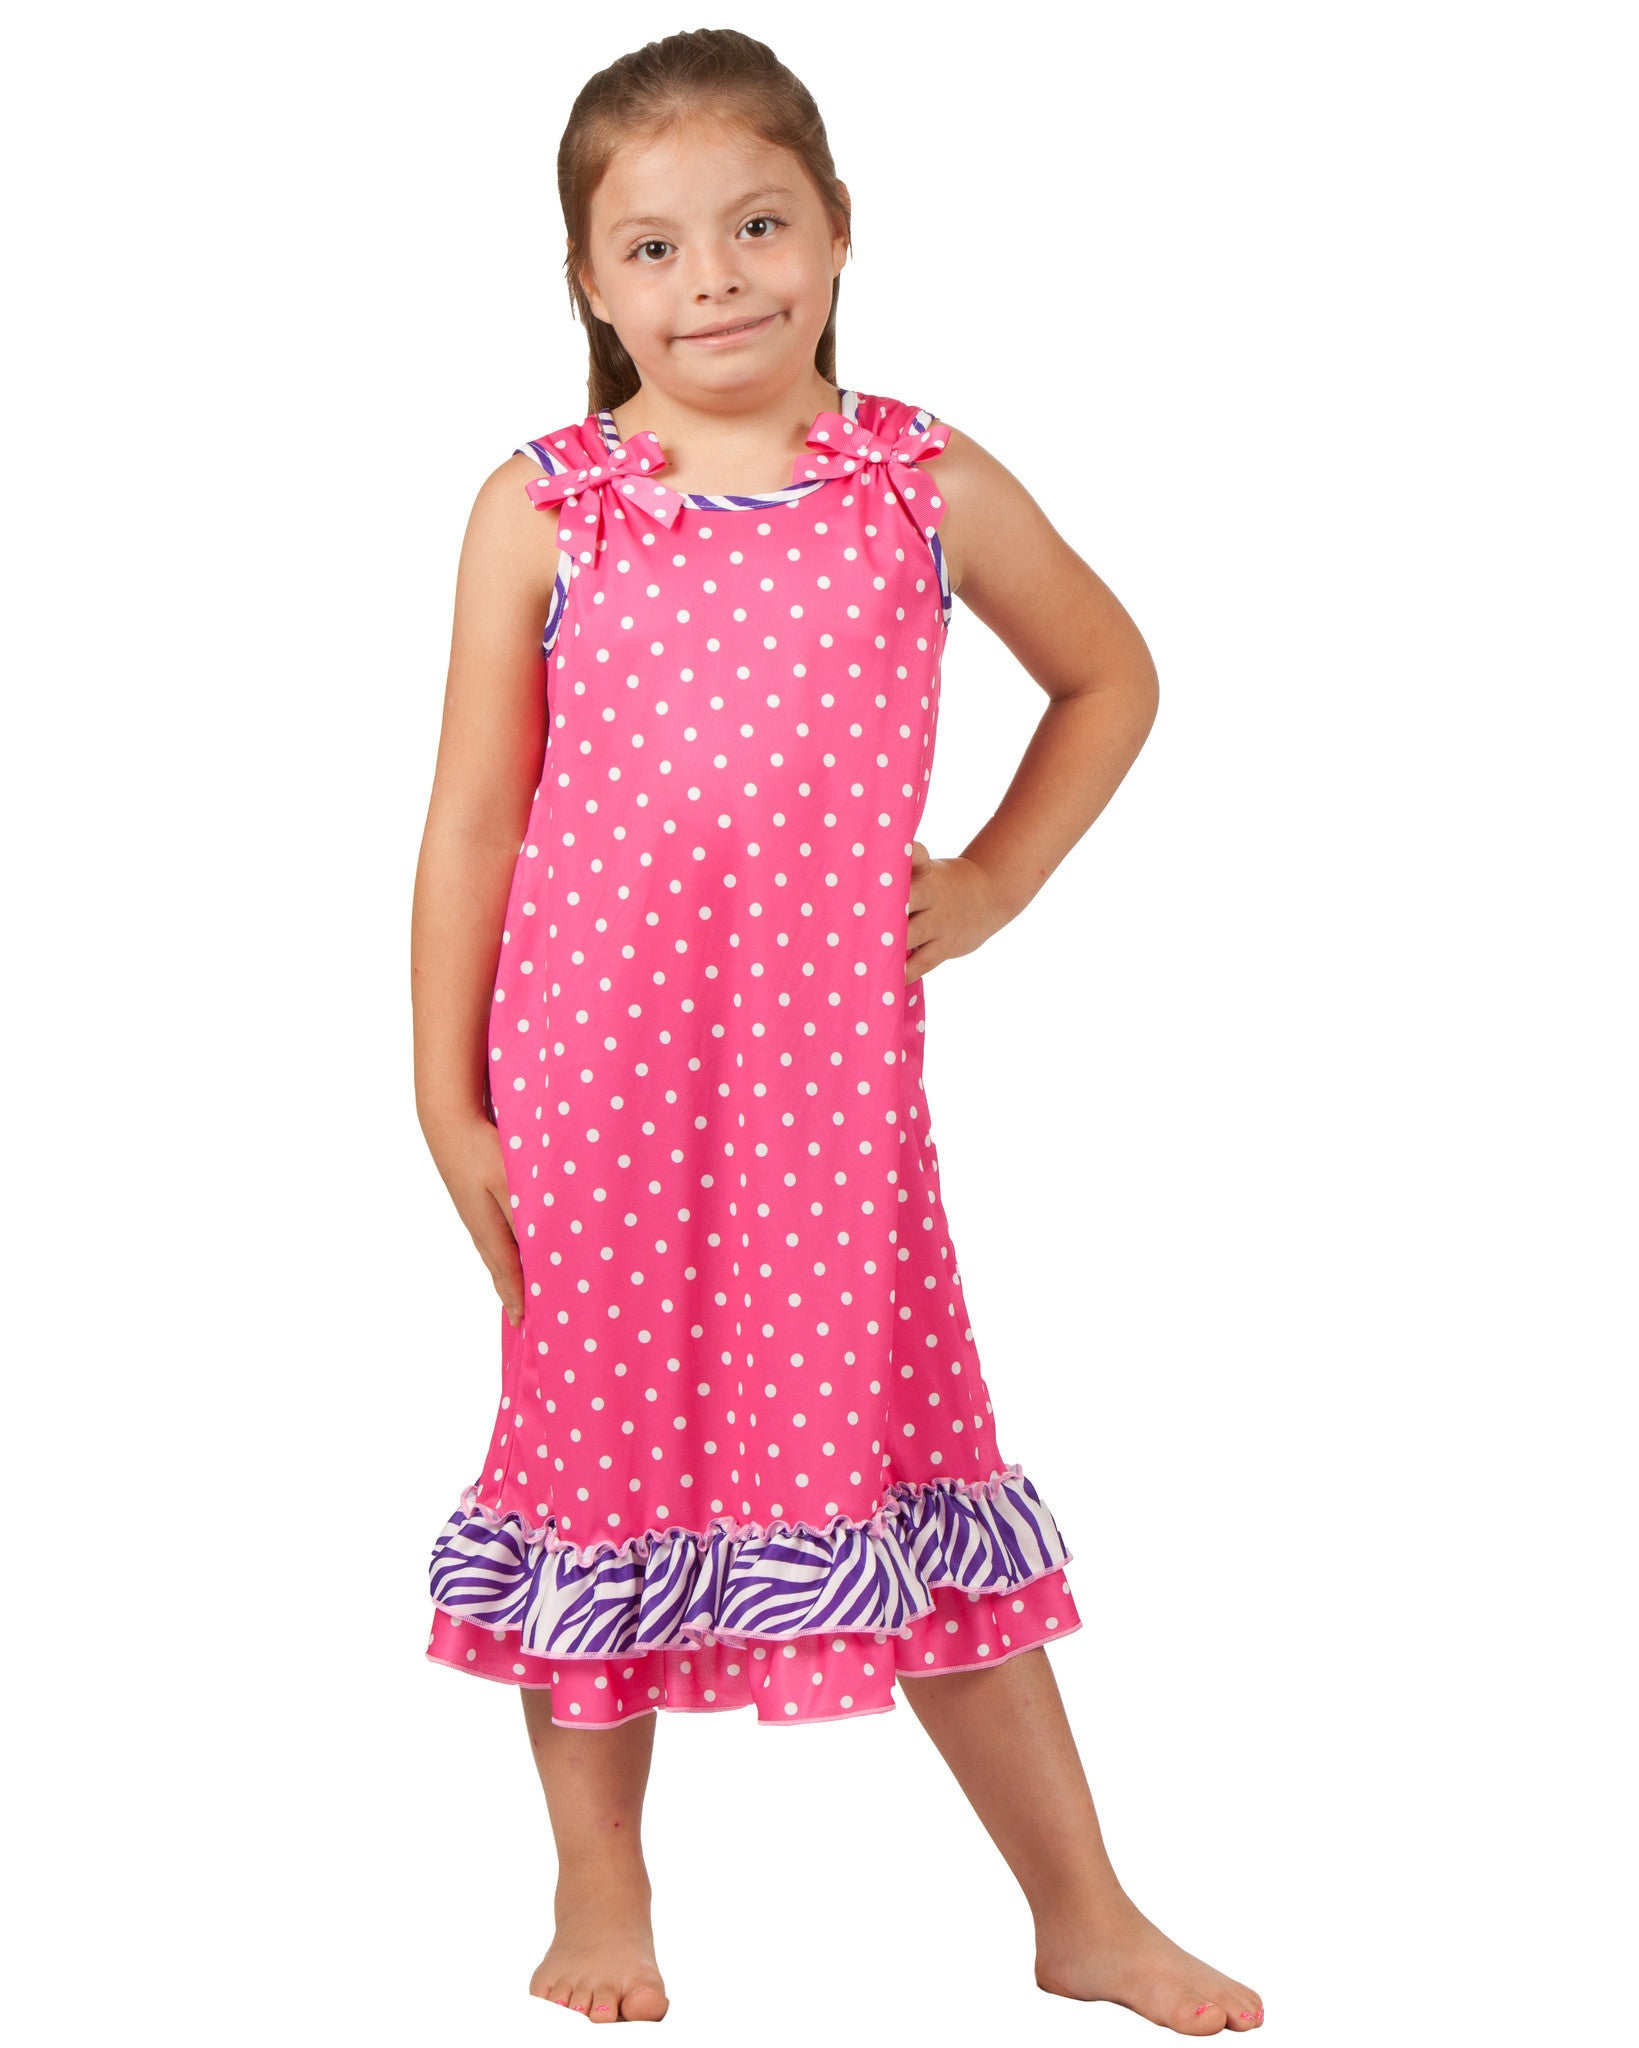 Laura Dare Darling Diva Bow Top Gown (2T - 10)